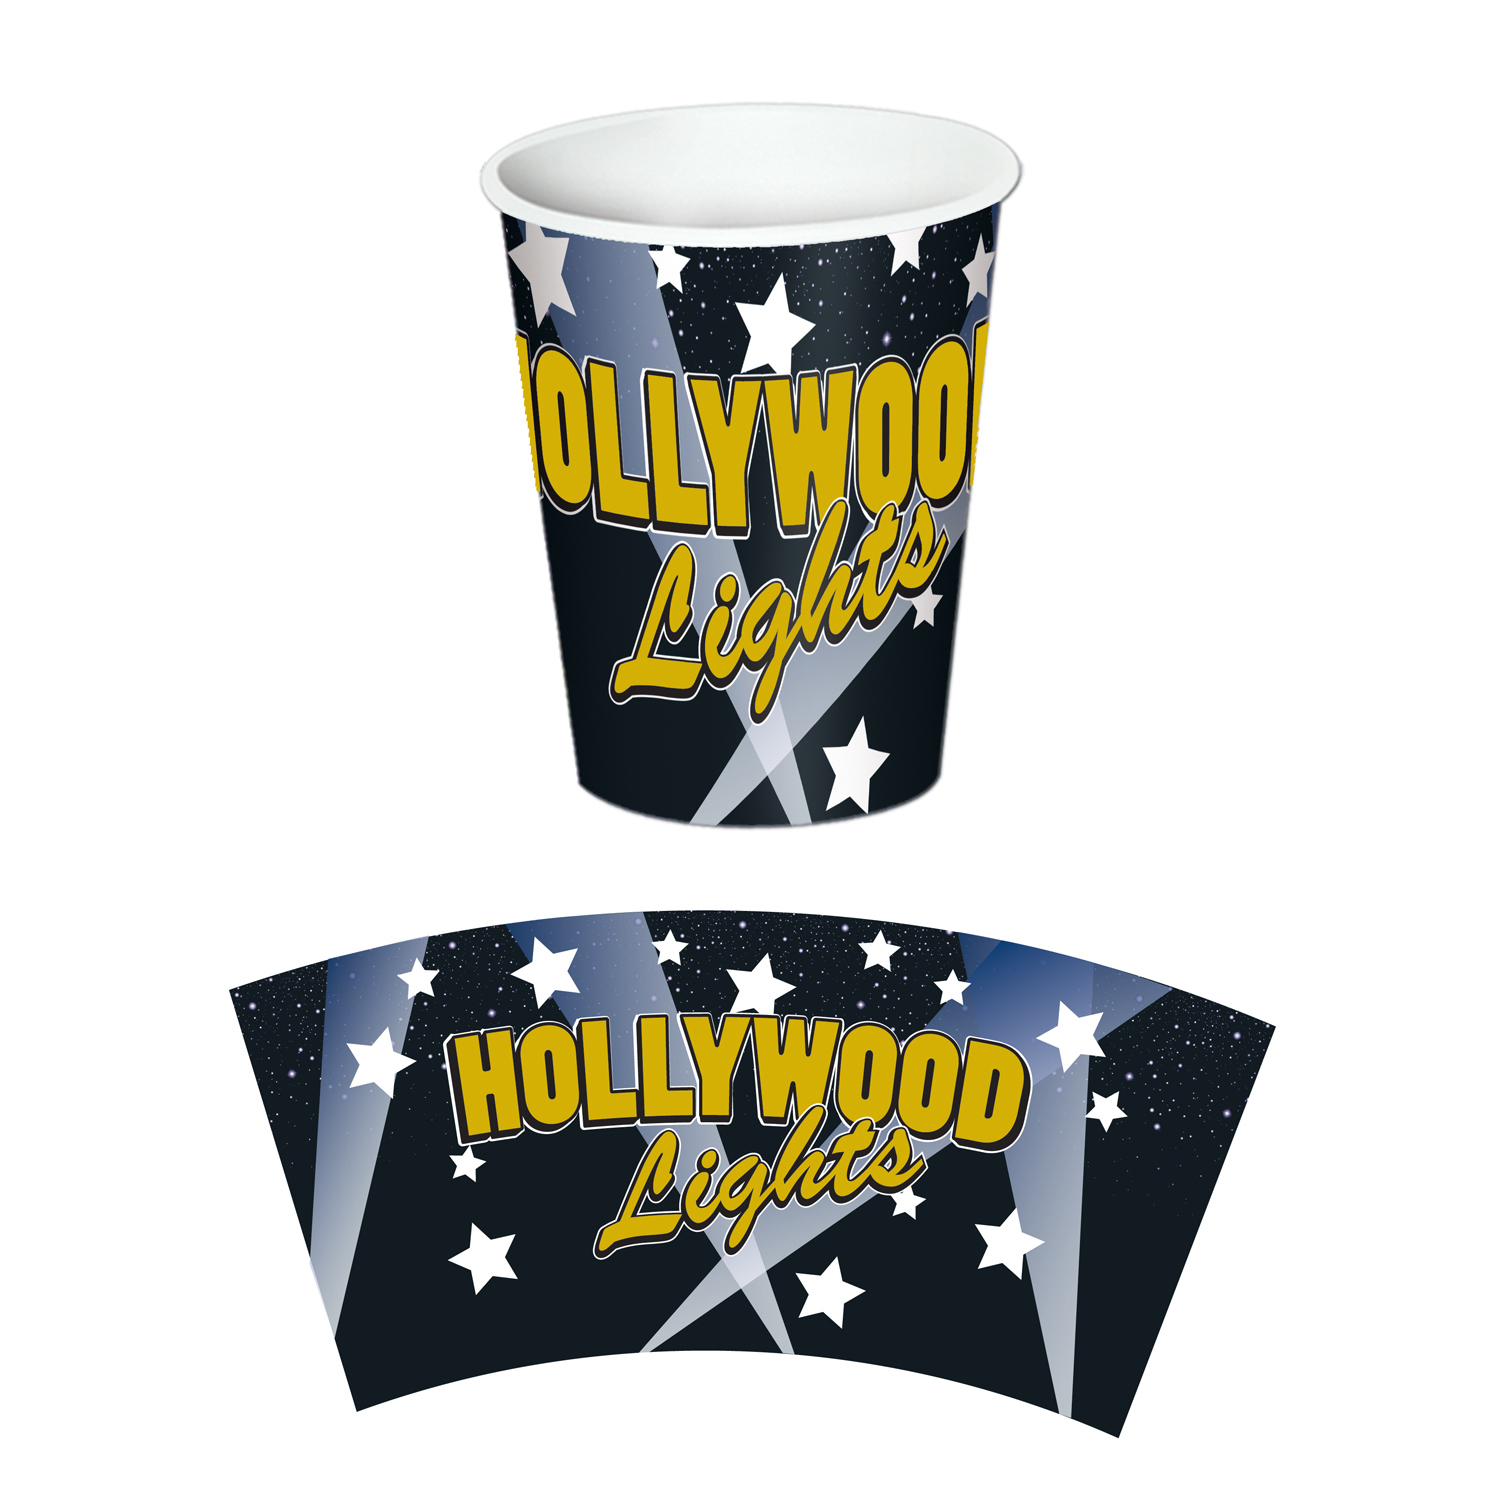 Hollywood Lights Beverage Cups (Pack of 12) Hollywood, star, lights, drinks, beverage cups, cups, celebrity